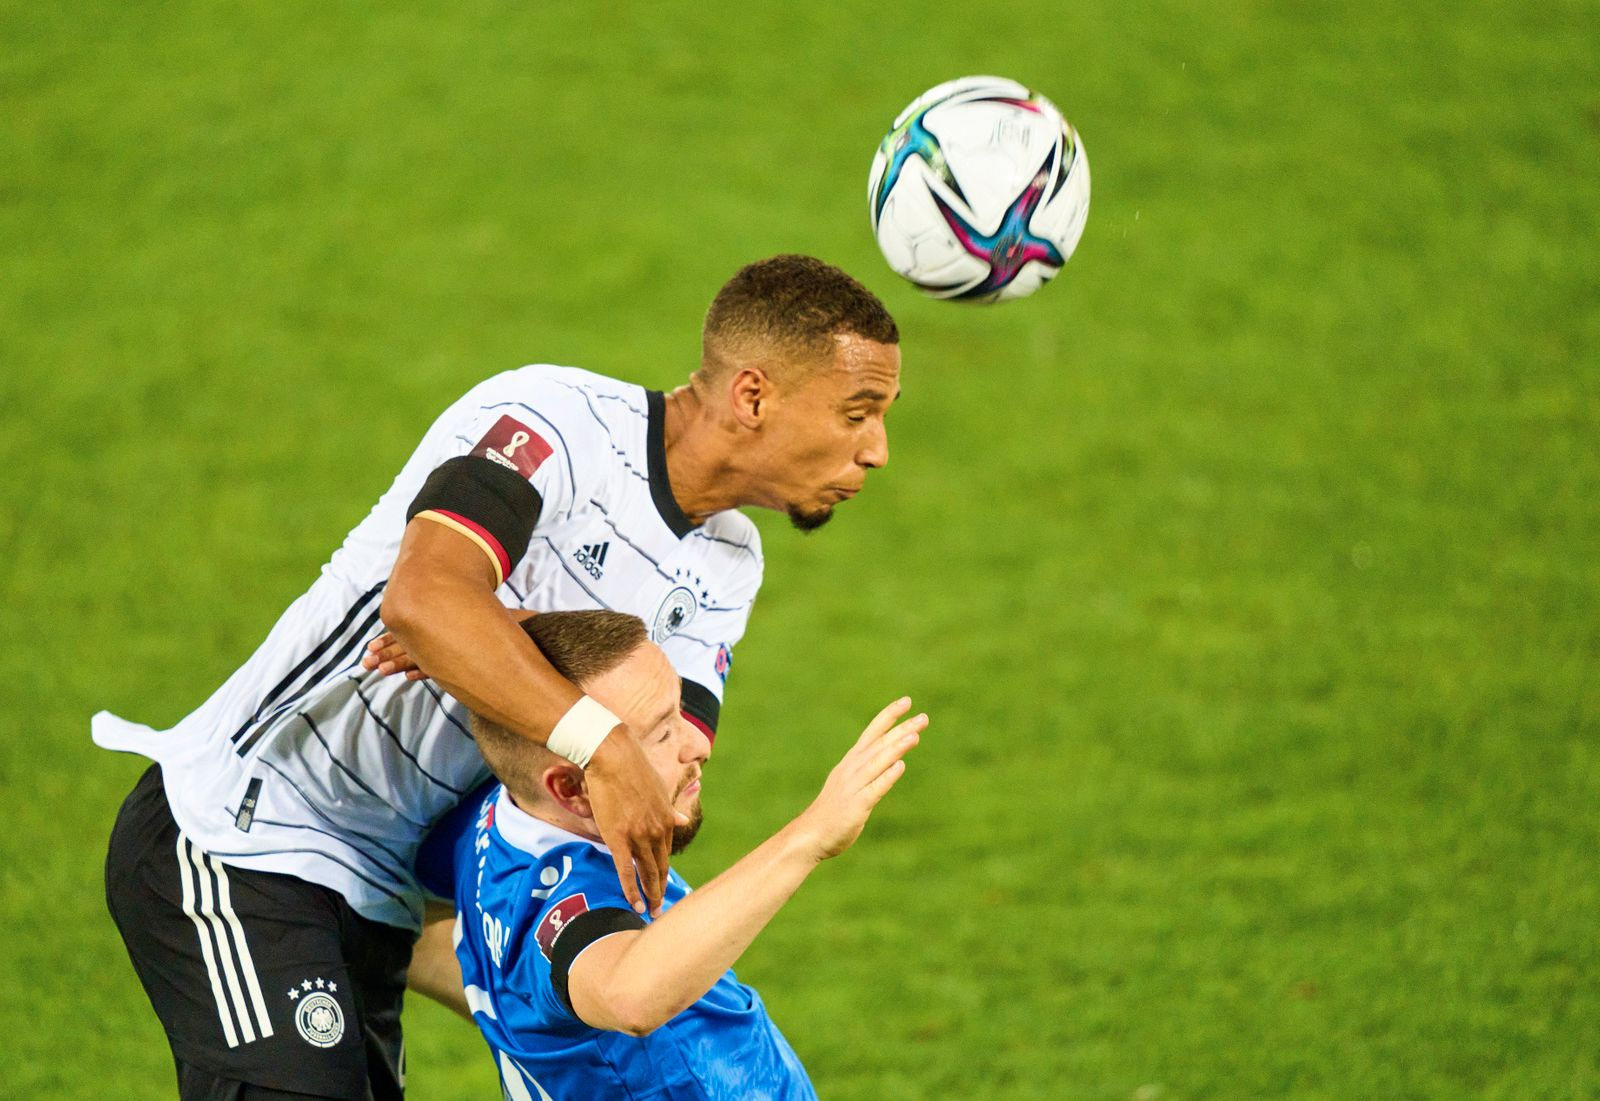 Thilo Kehrer, DFB 4 compete for the ball, tackling, duel, header, zweikampf, action, fight against Fabio Wolfinger, Lie